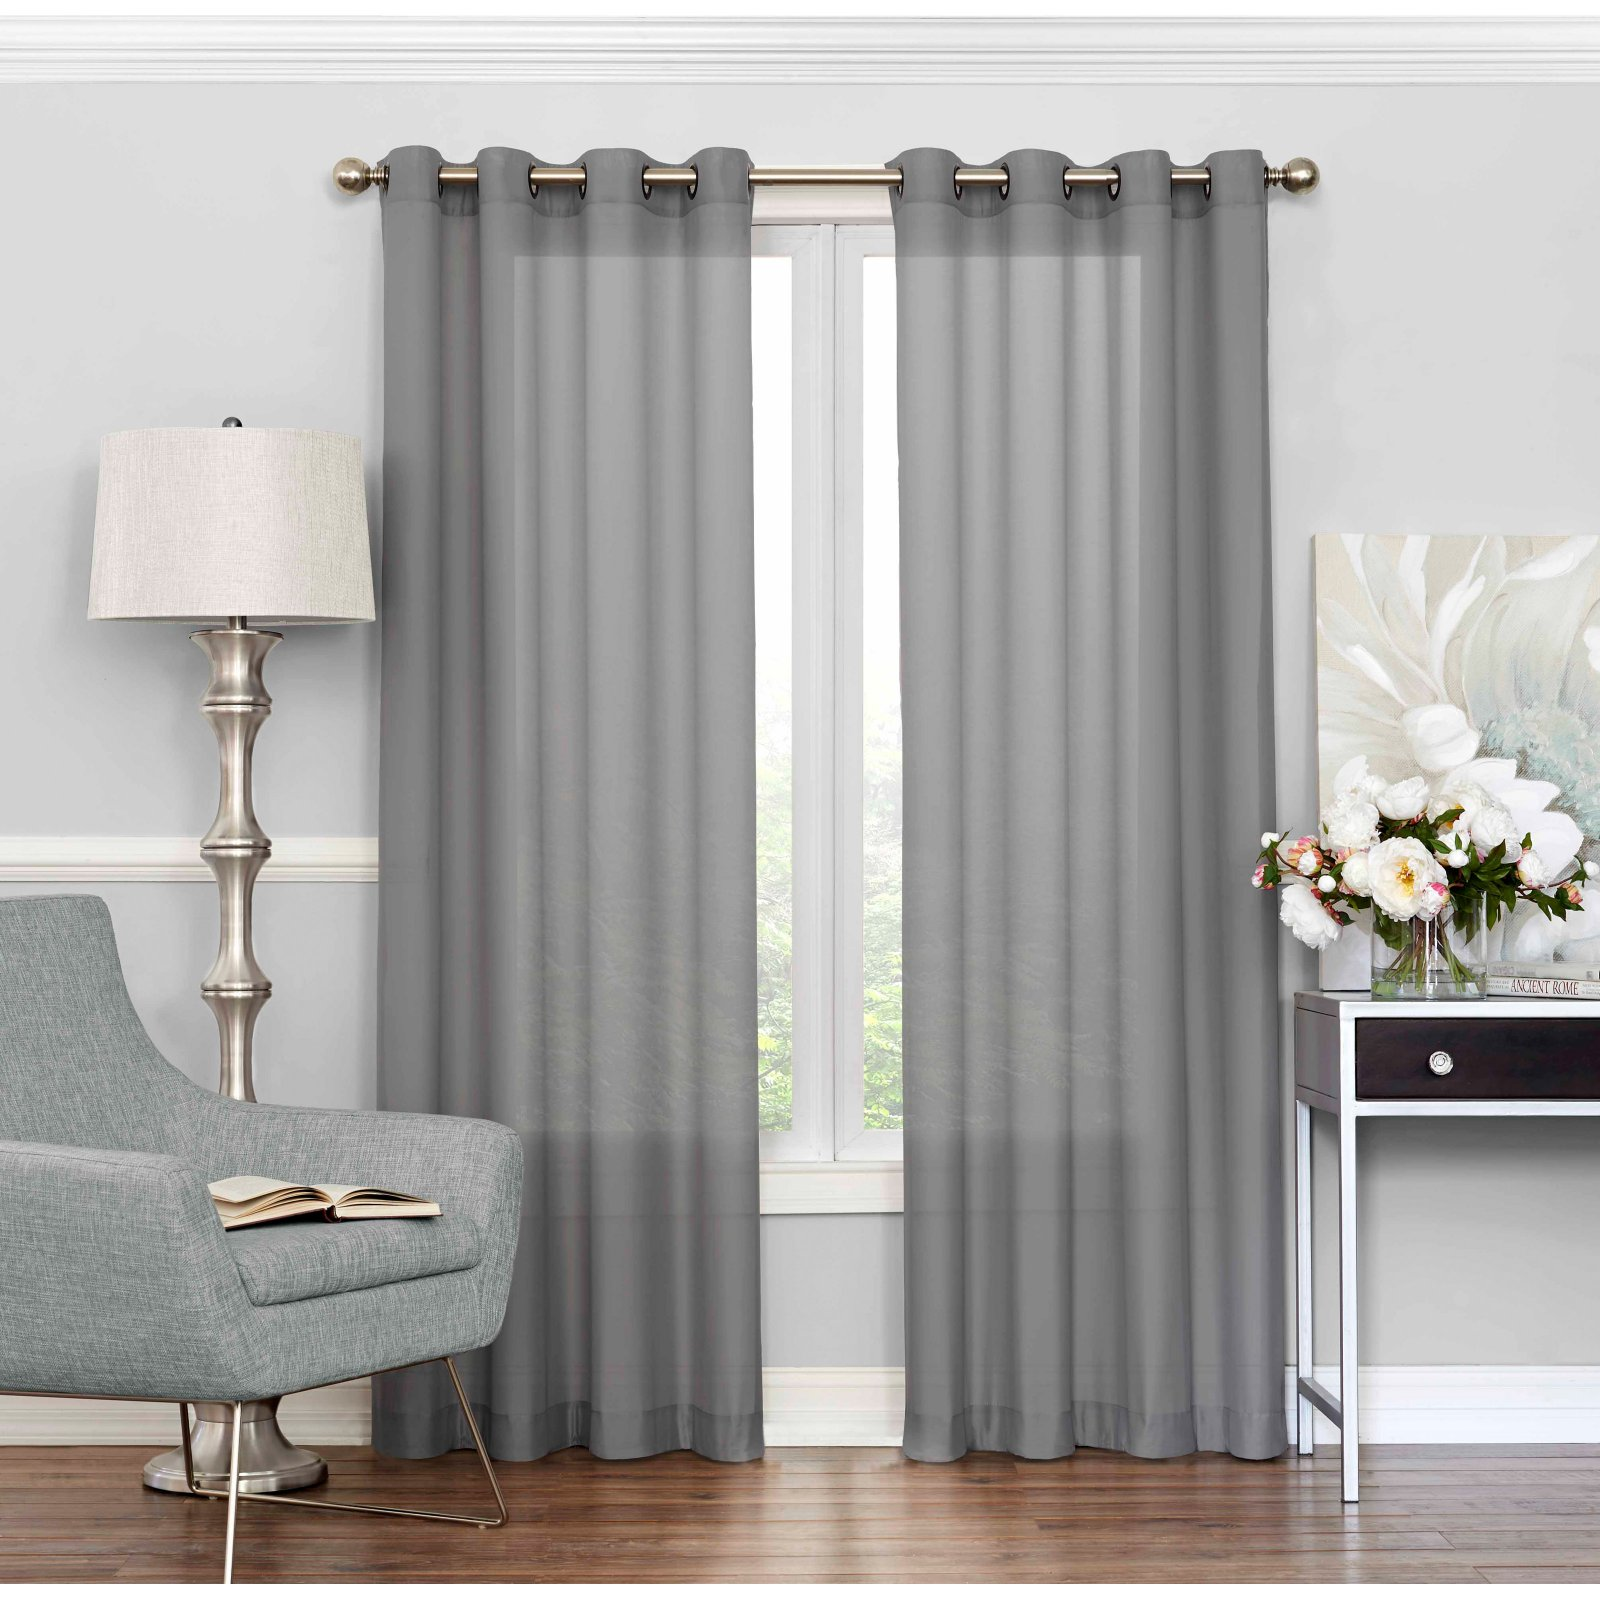 Eclipse Liberty Light Filtering Sheer Curtain by Ellery Homestyles